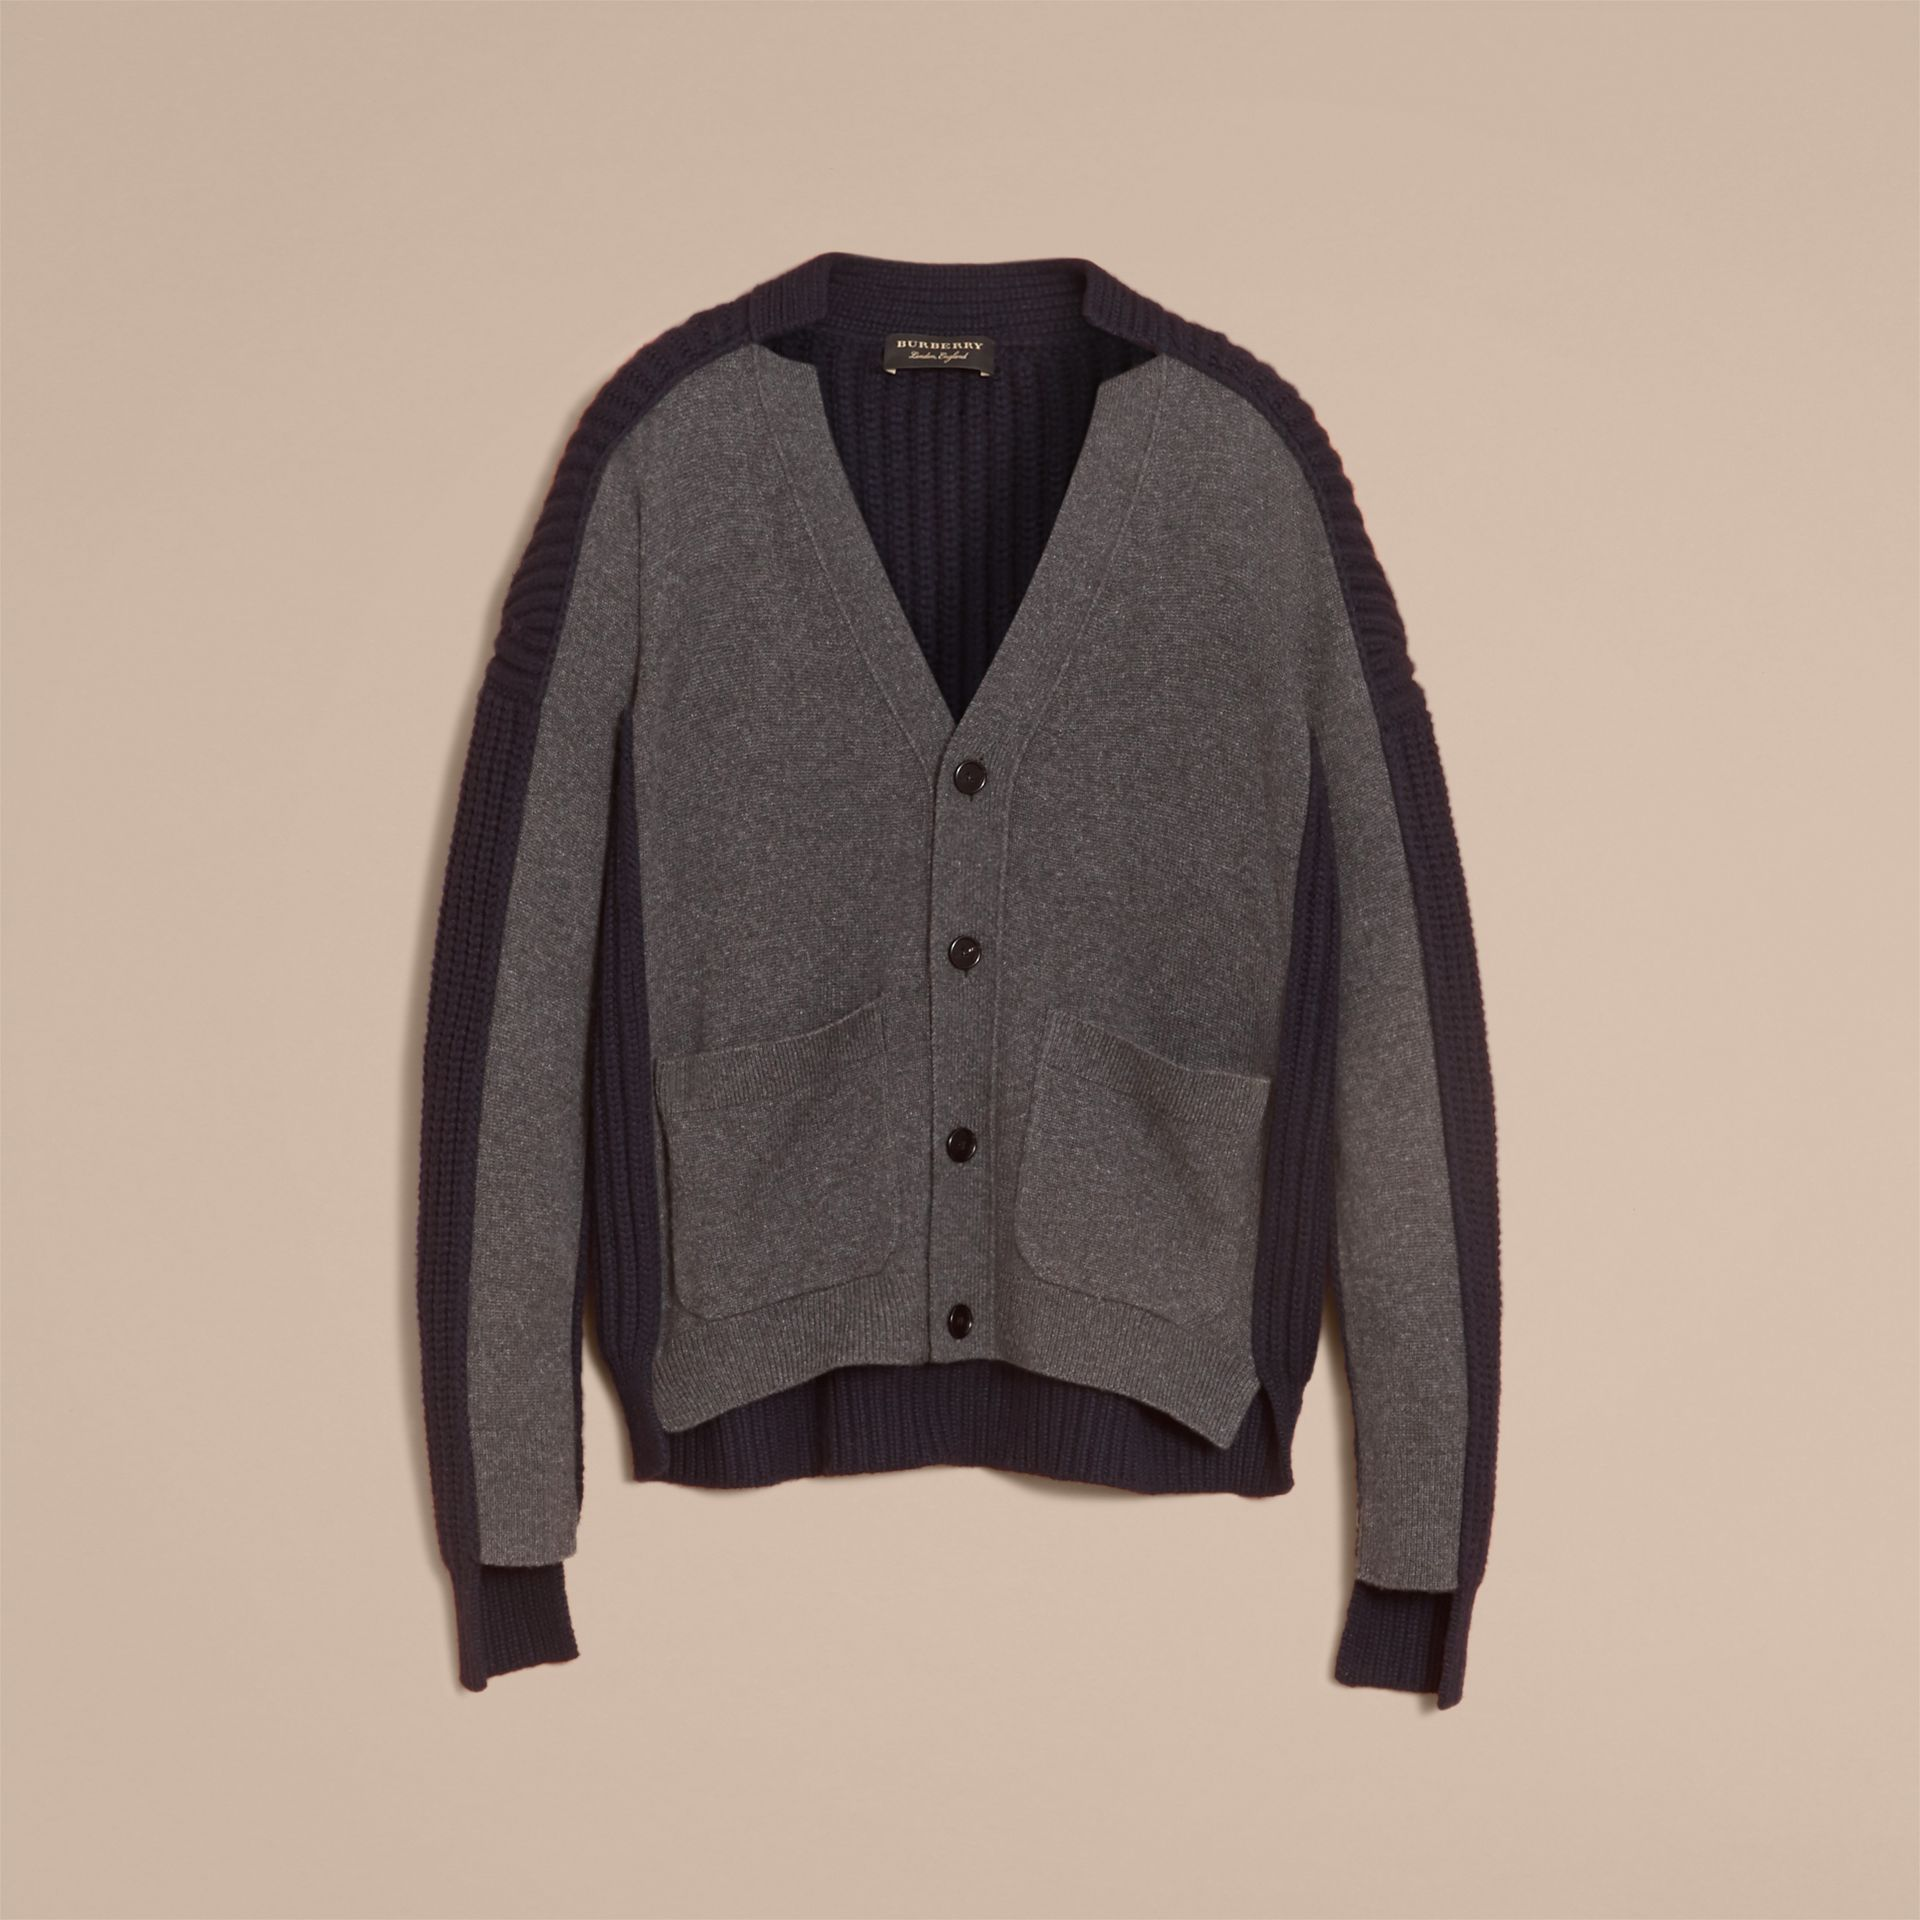 Two-tone Cashmere Cardigan with Ribbed Detail in Grey Navy - Men | Burberry - gallery image 3